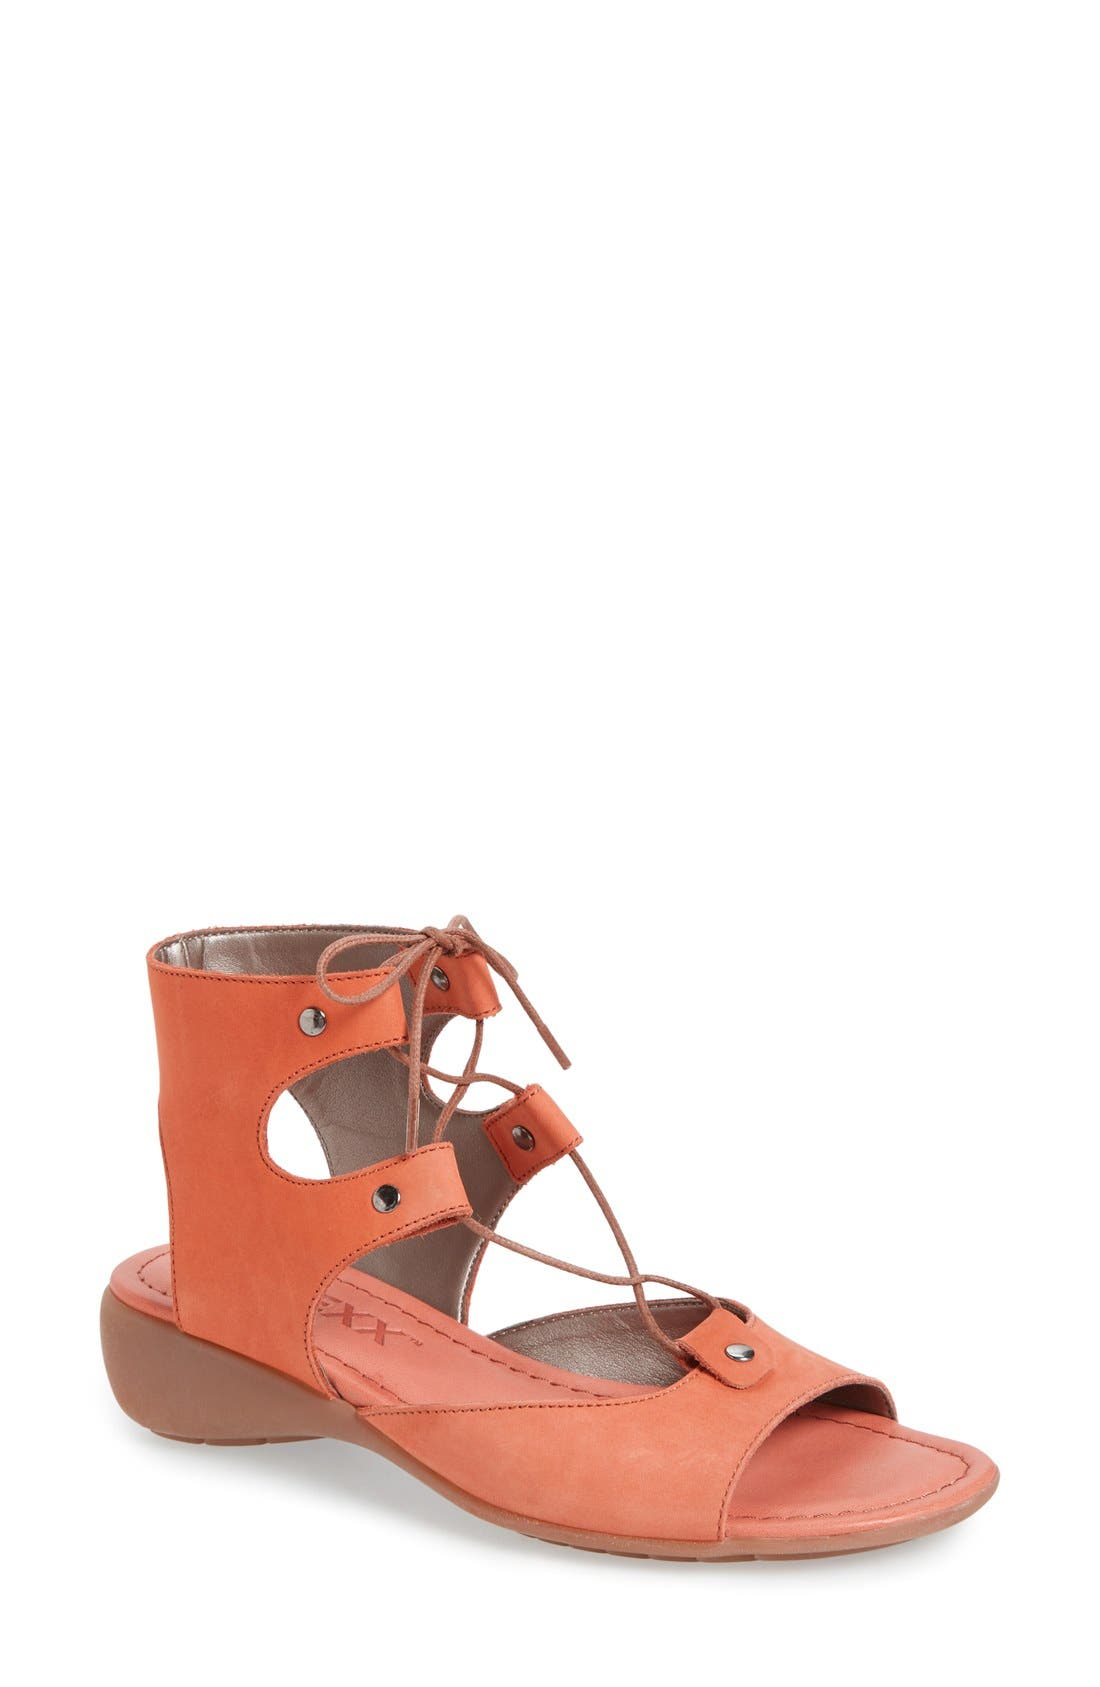 Lace-Up Gladiator Sandal,                         Main,                         color, Heat Nubuck Leather